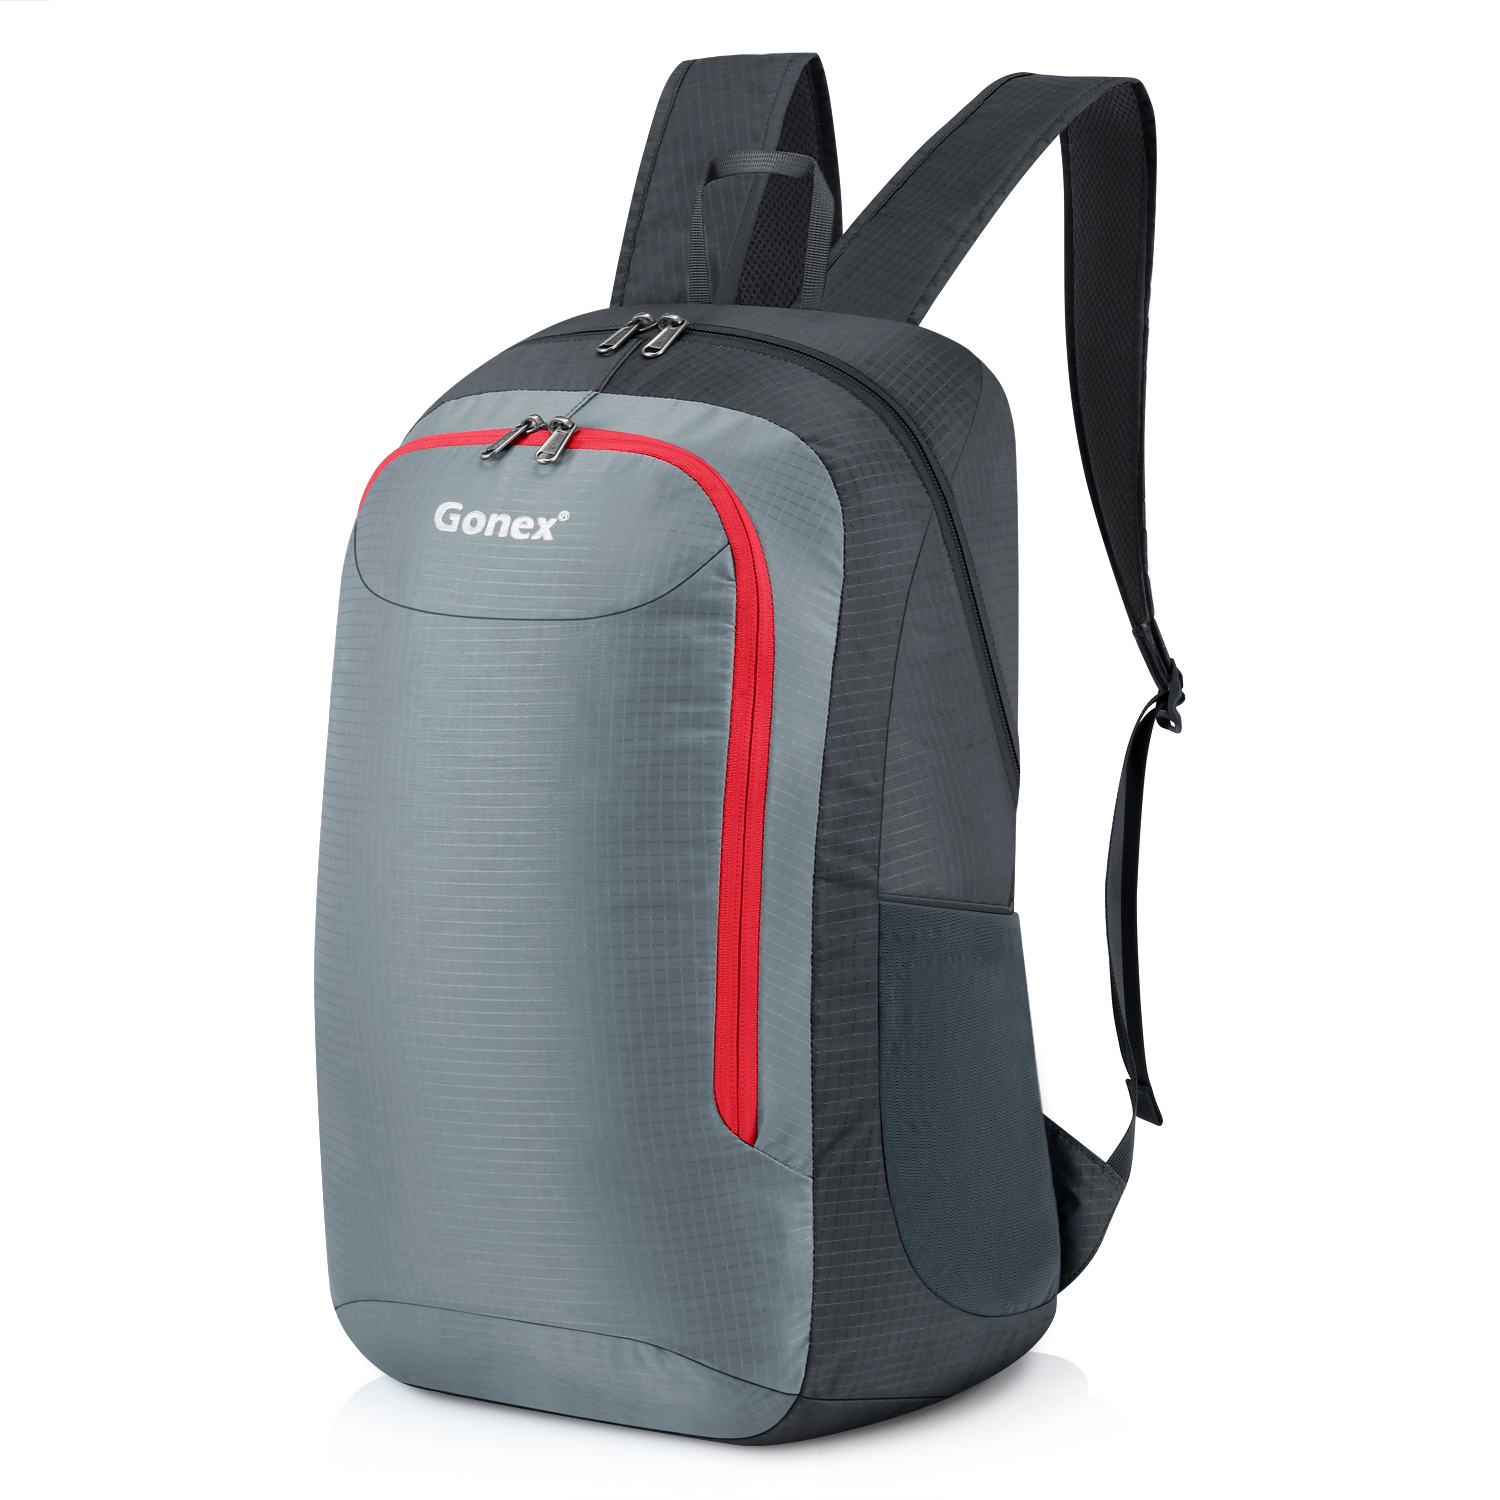 Gonex Packable Travel Backpack 45L Foldable Lightweight Daypack for Hiking Climbing Camping Backpacking Cycling for Men Women